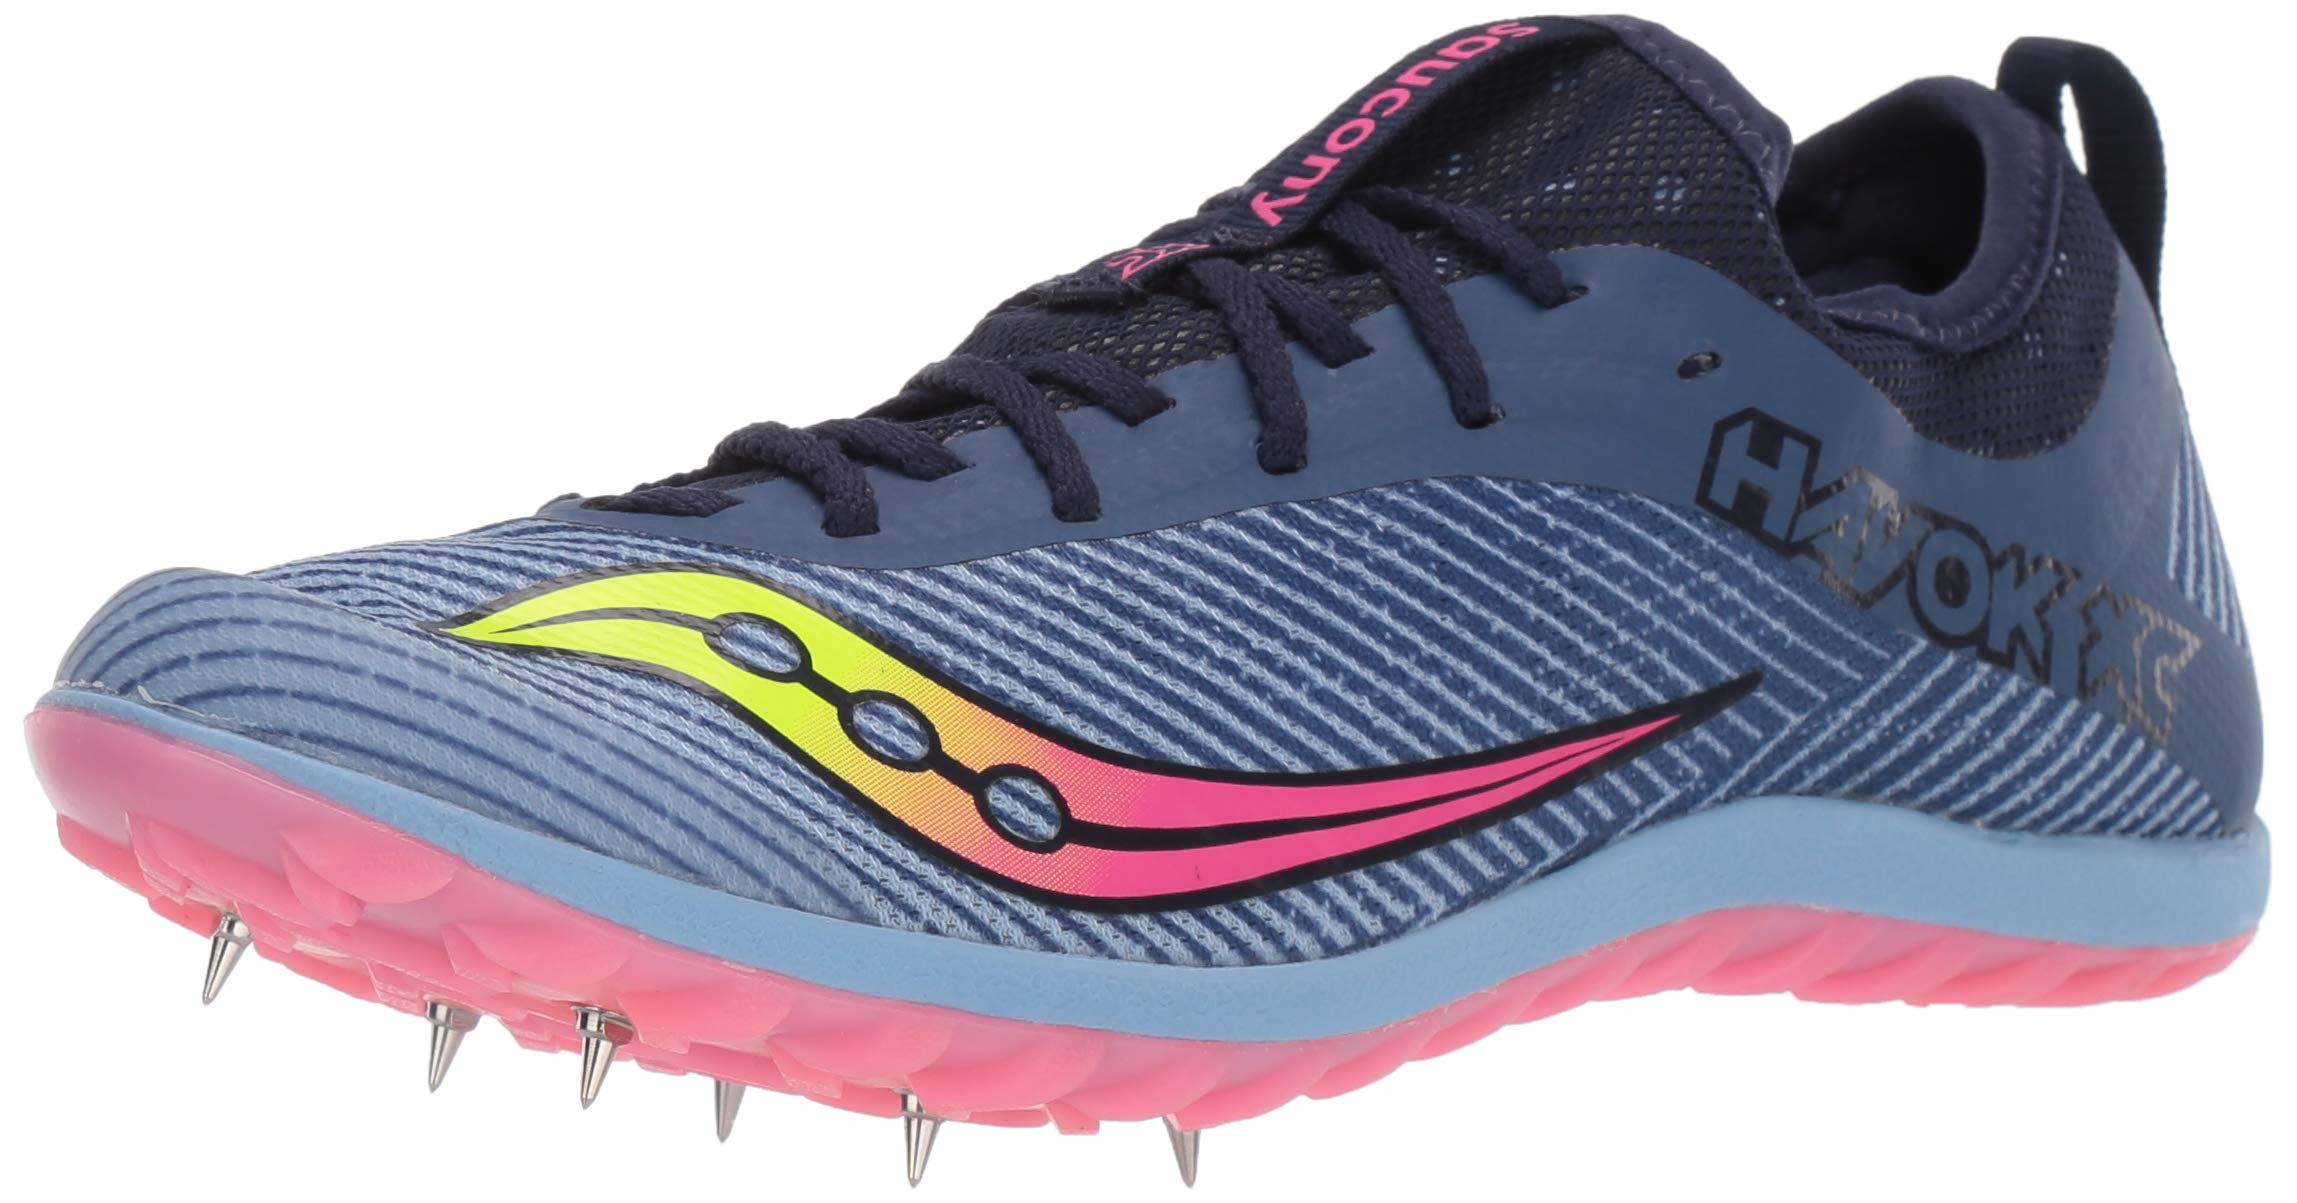 Saucony Women's Havok XC2 Track and Field Shoe, Blue/Citron/Vizi Pink, 6.5 Medium US by Saucony